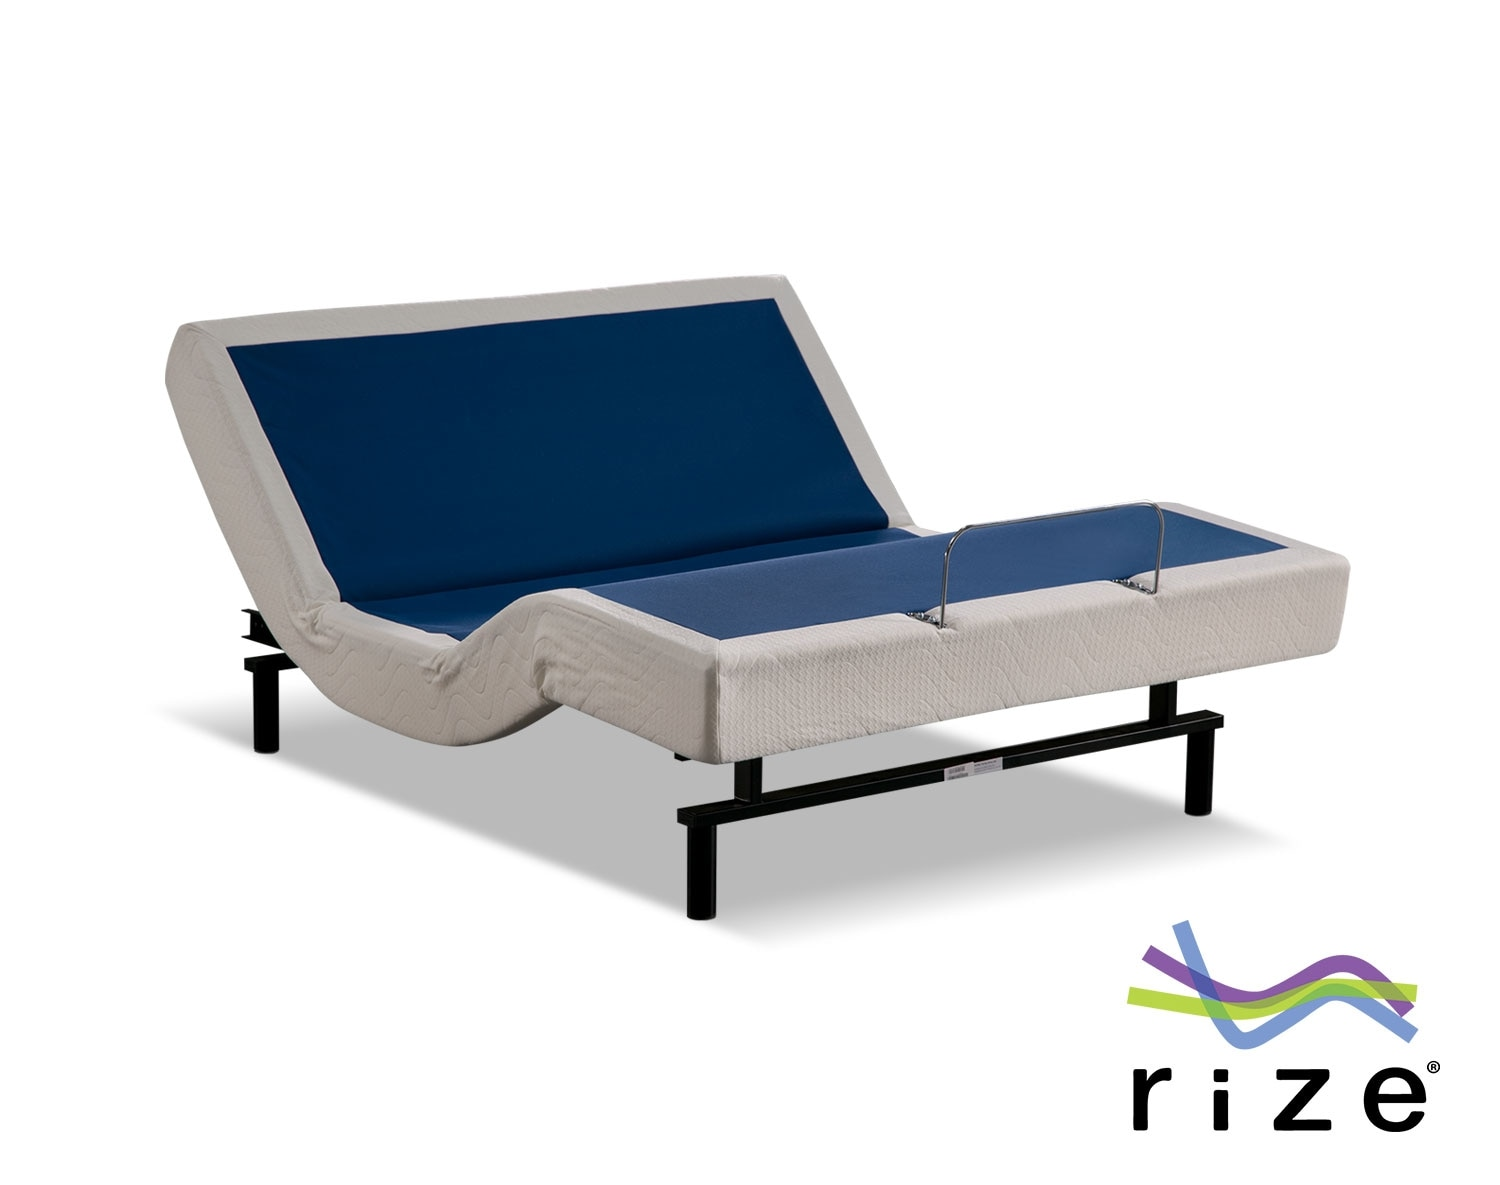 [The Rize Elevation Adjustable Collection]